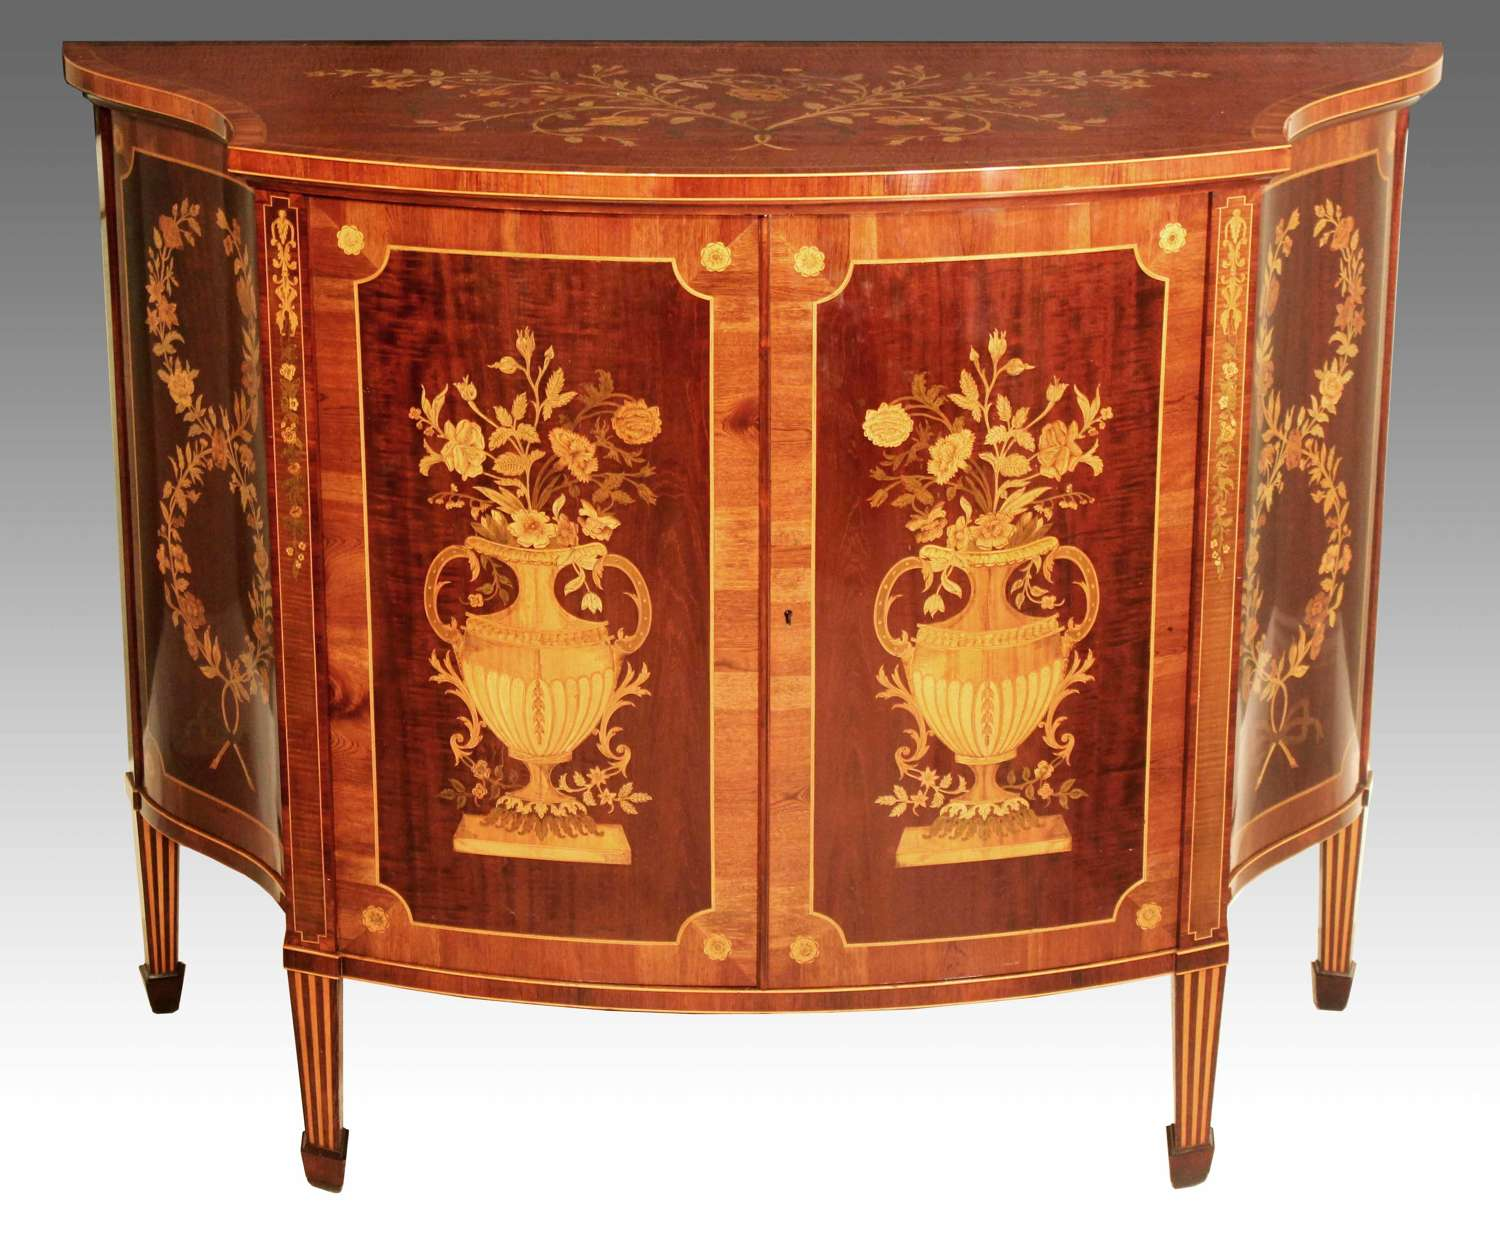 A Superb Late Victorian Mahogany Inlaid Serpentine Commode